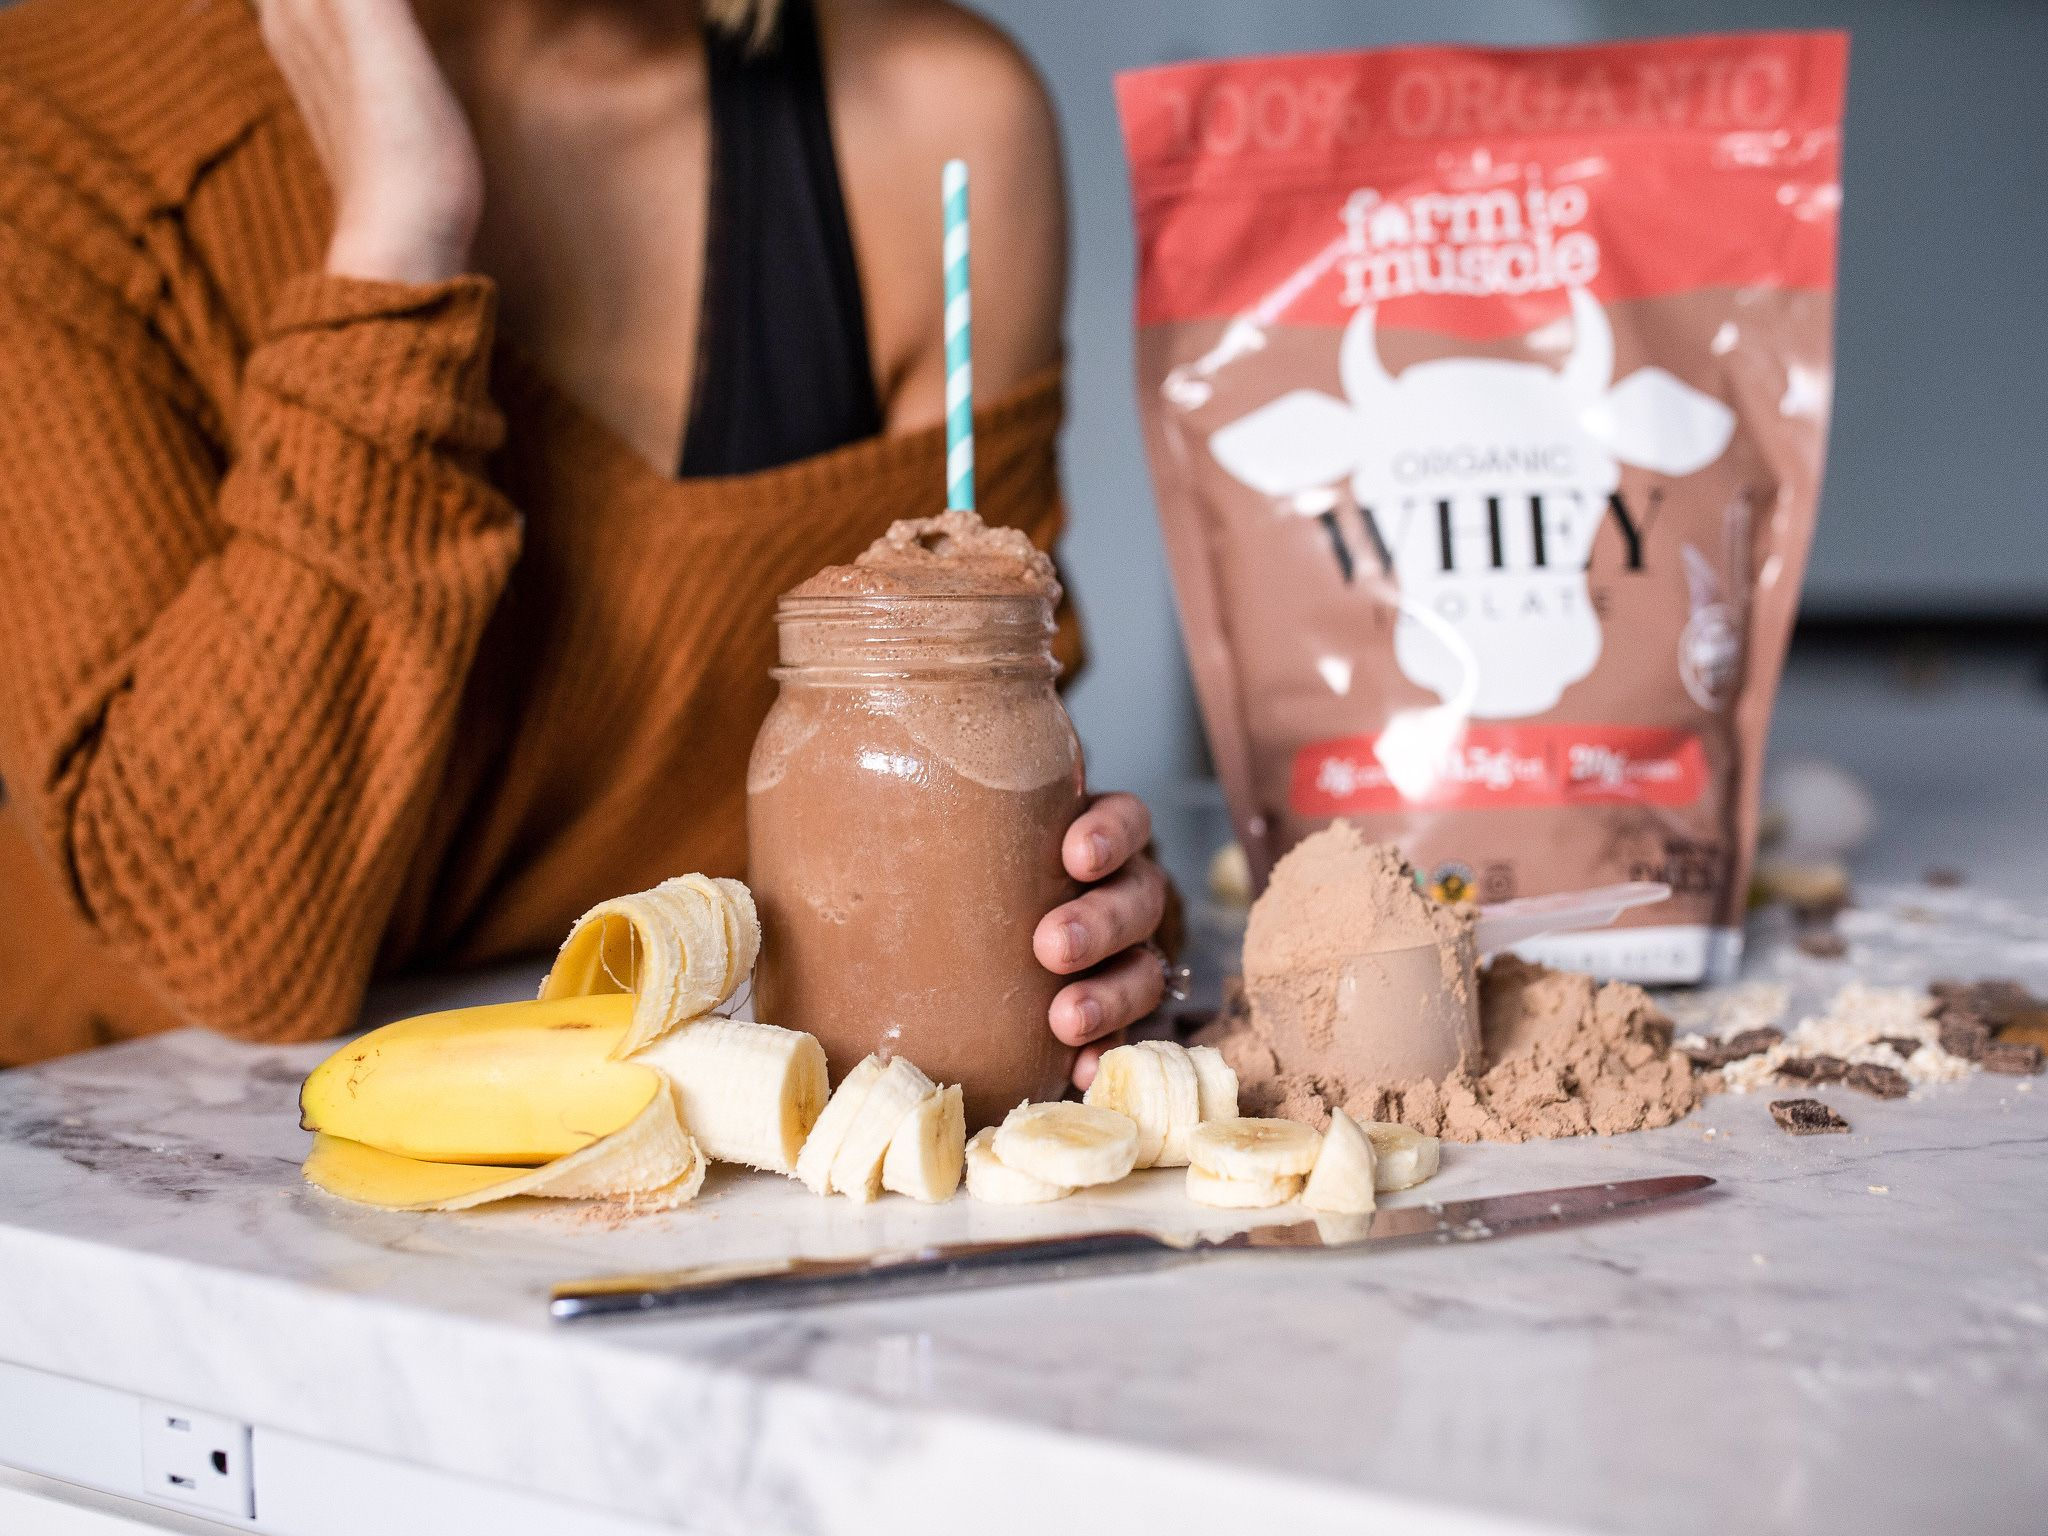 Farm To Muscle's organic whey protein powder is made with 100% organic traceable ingredi… in